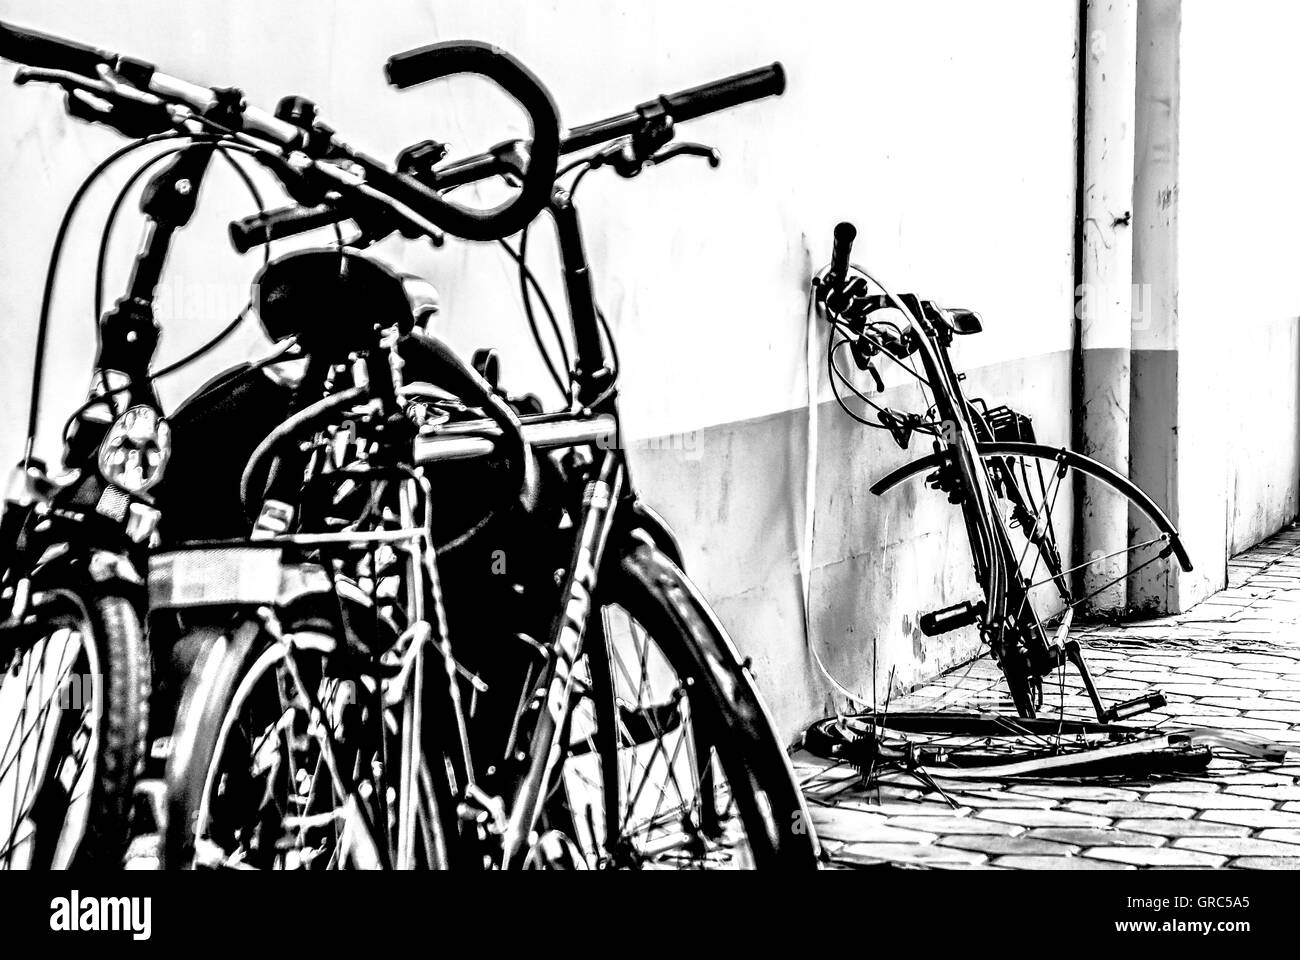 Bicycles Parked Amp Demolished - Stock Image